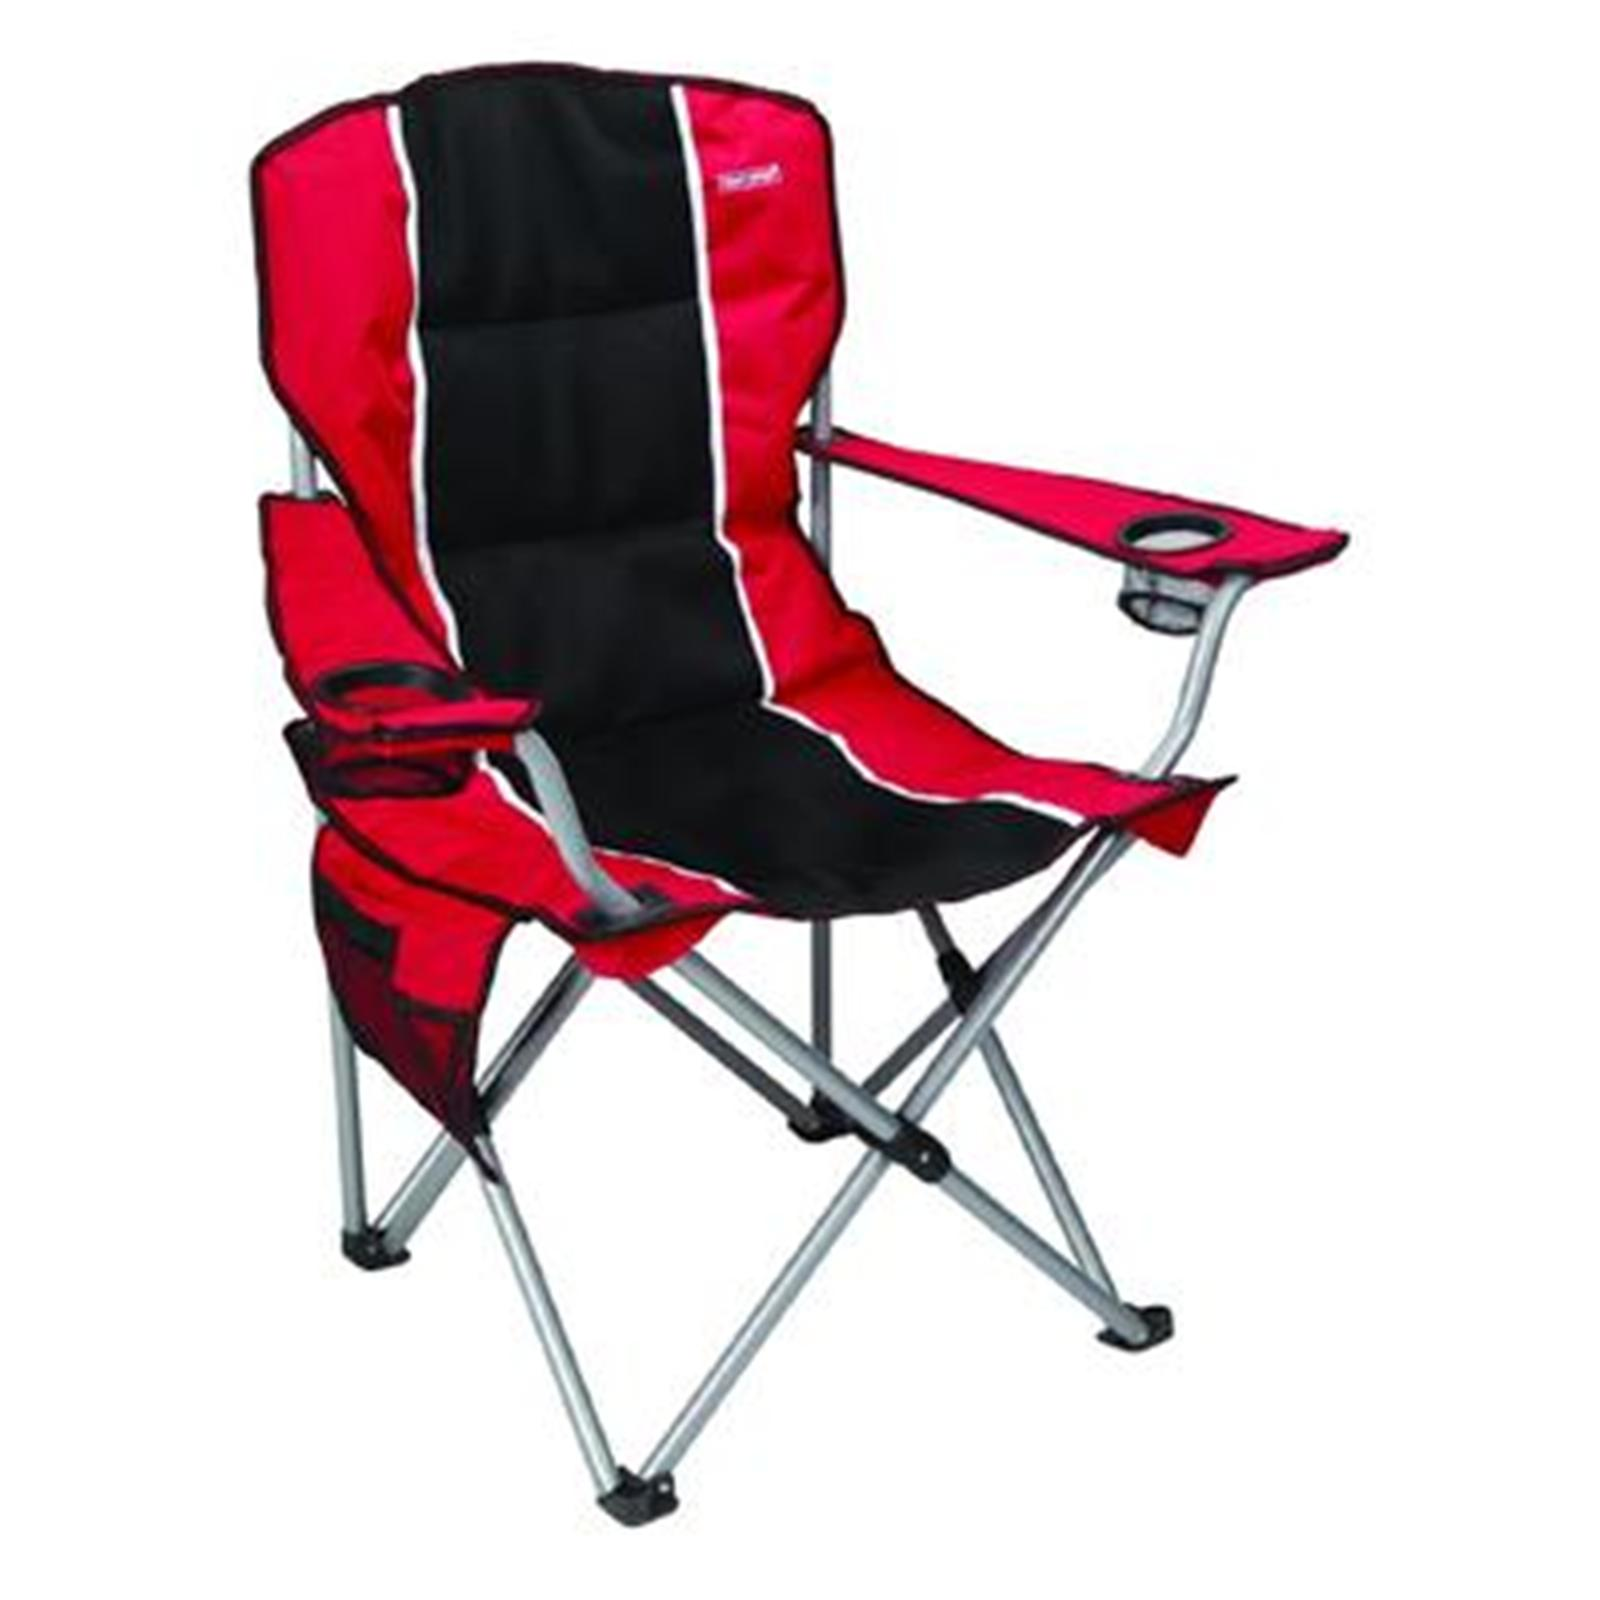 Heavy Duty Outdoor Folding Chairs Craftsman Heavy Duty Fold Up Camp Chair Fitness And Sports